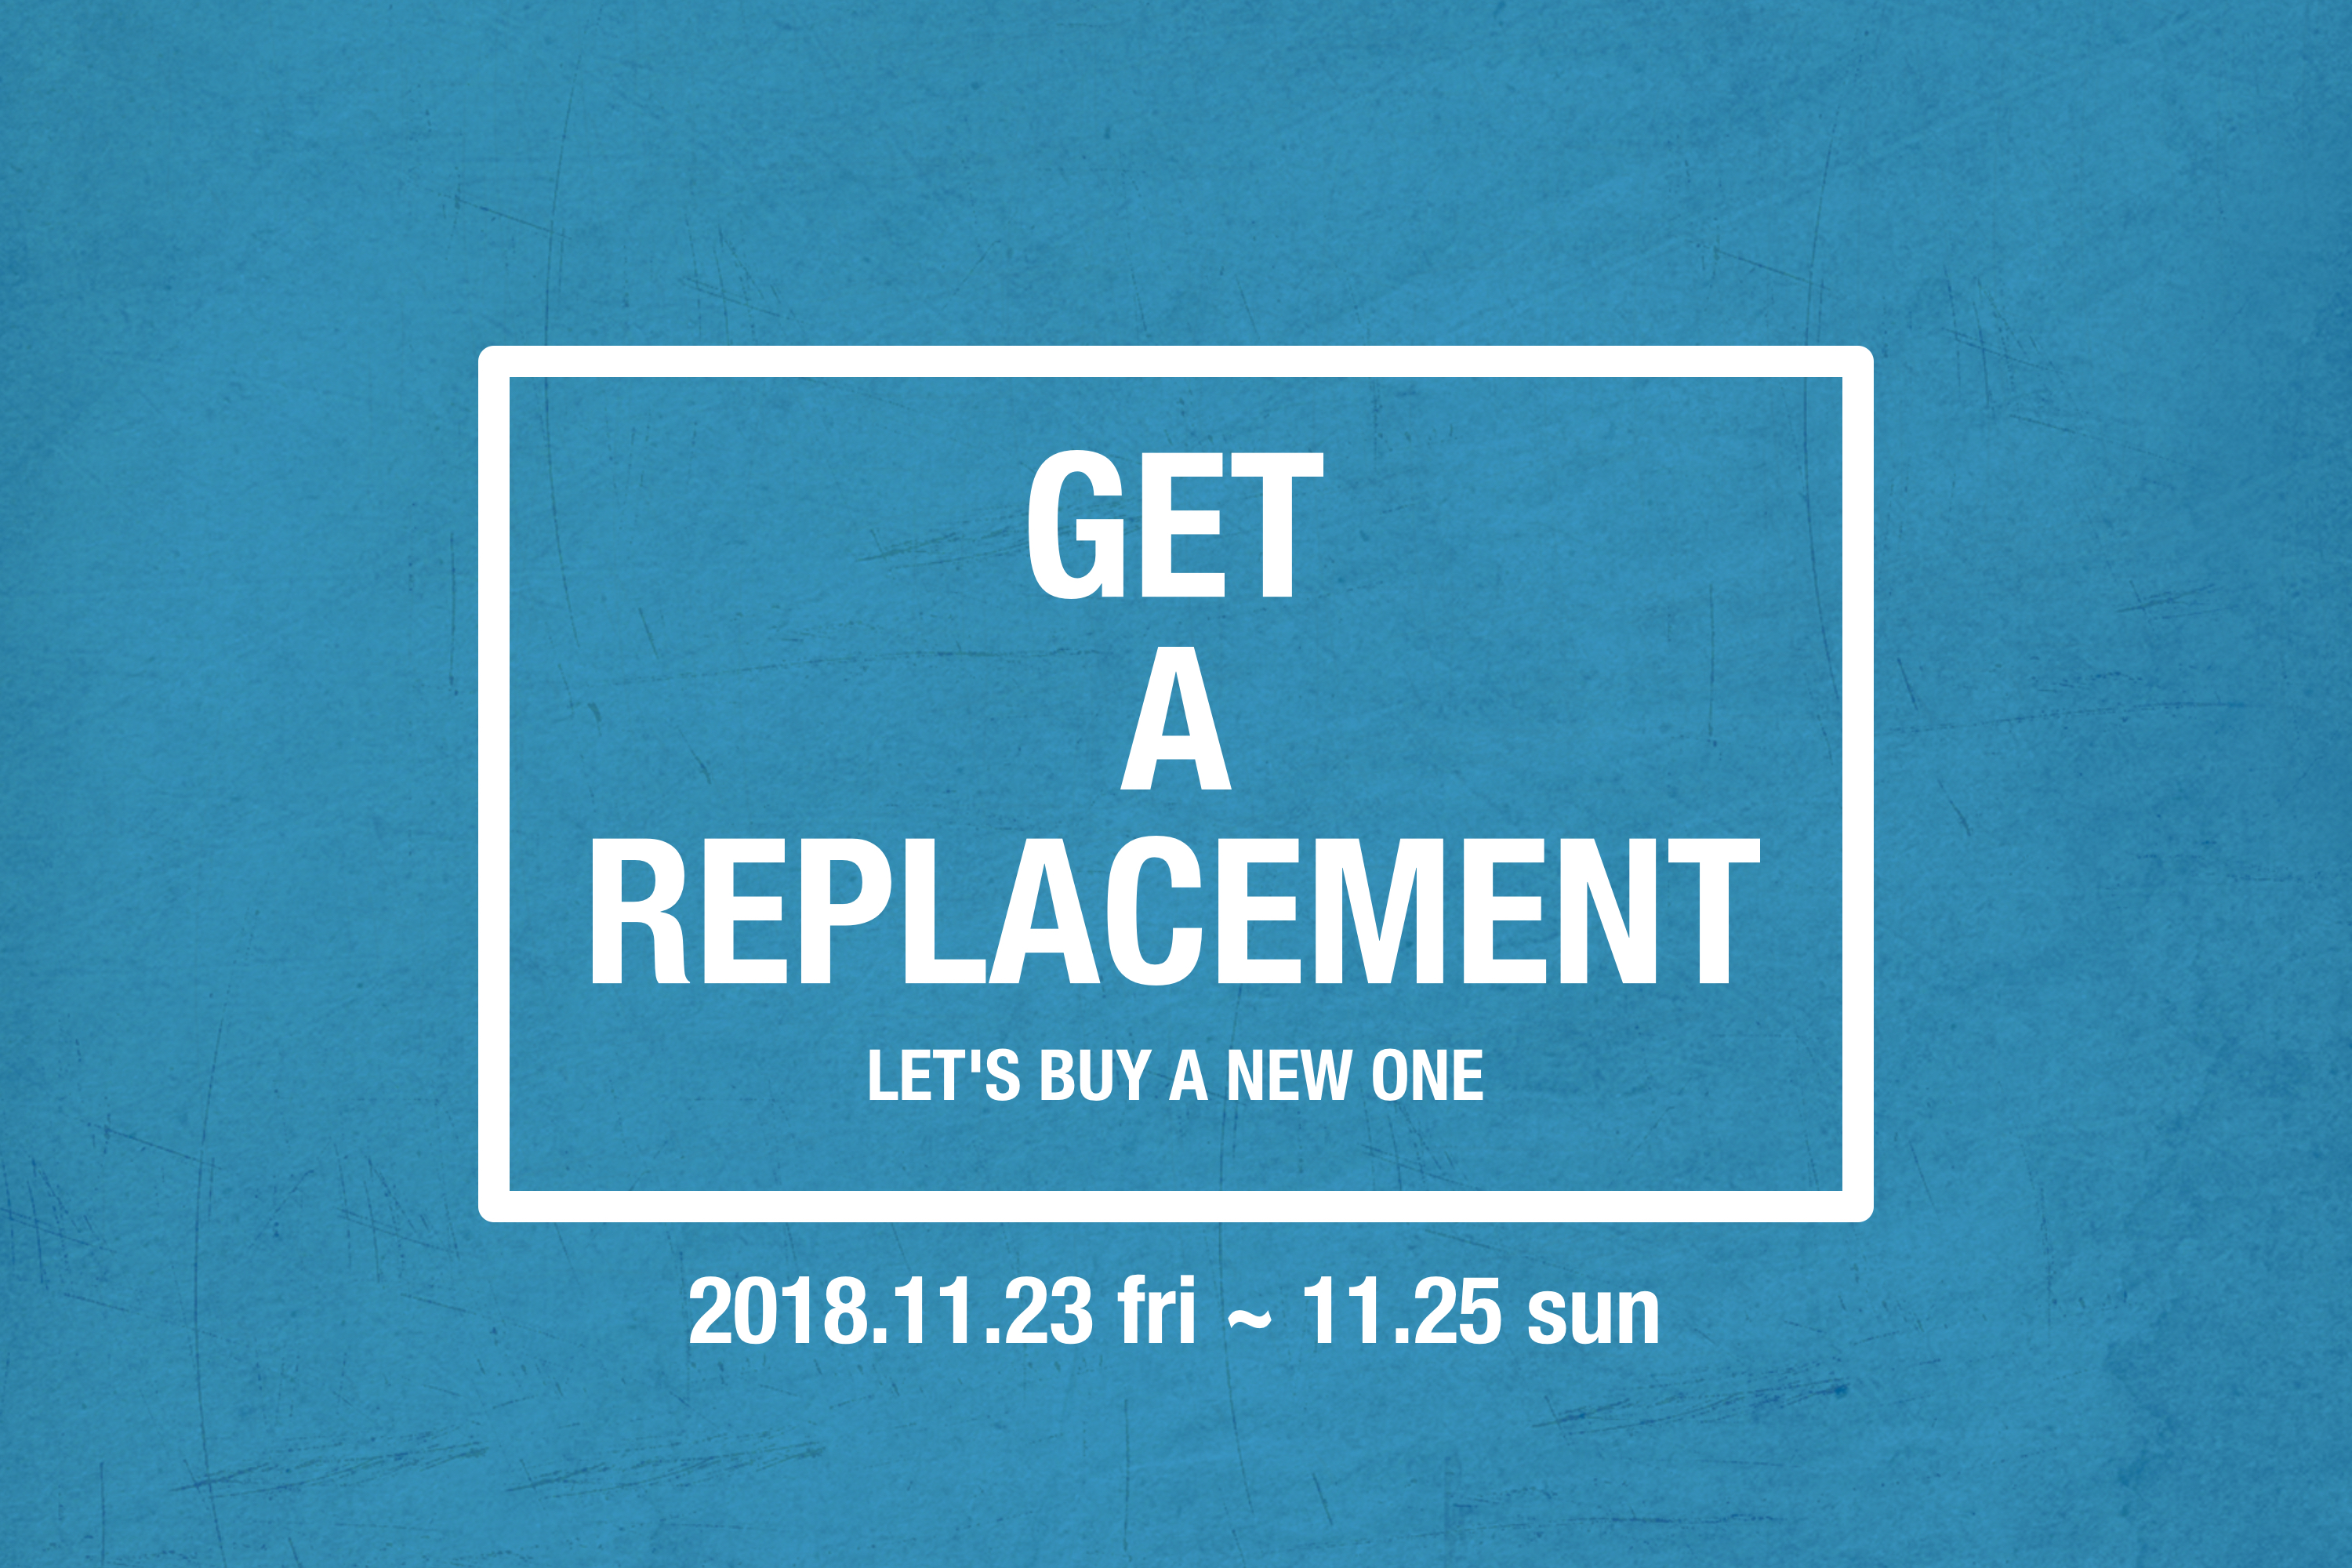 GET A REPLACEMENT